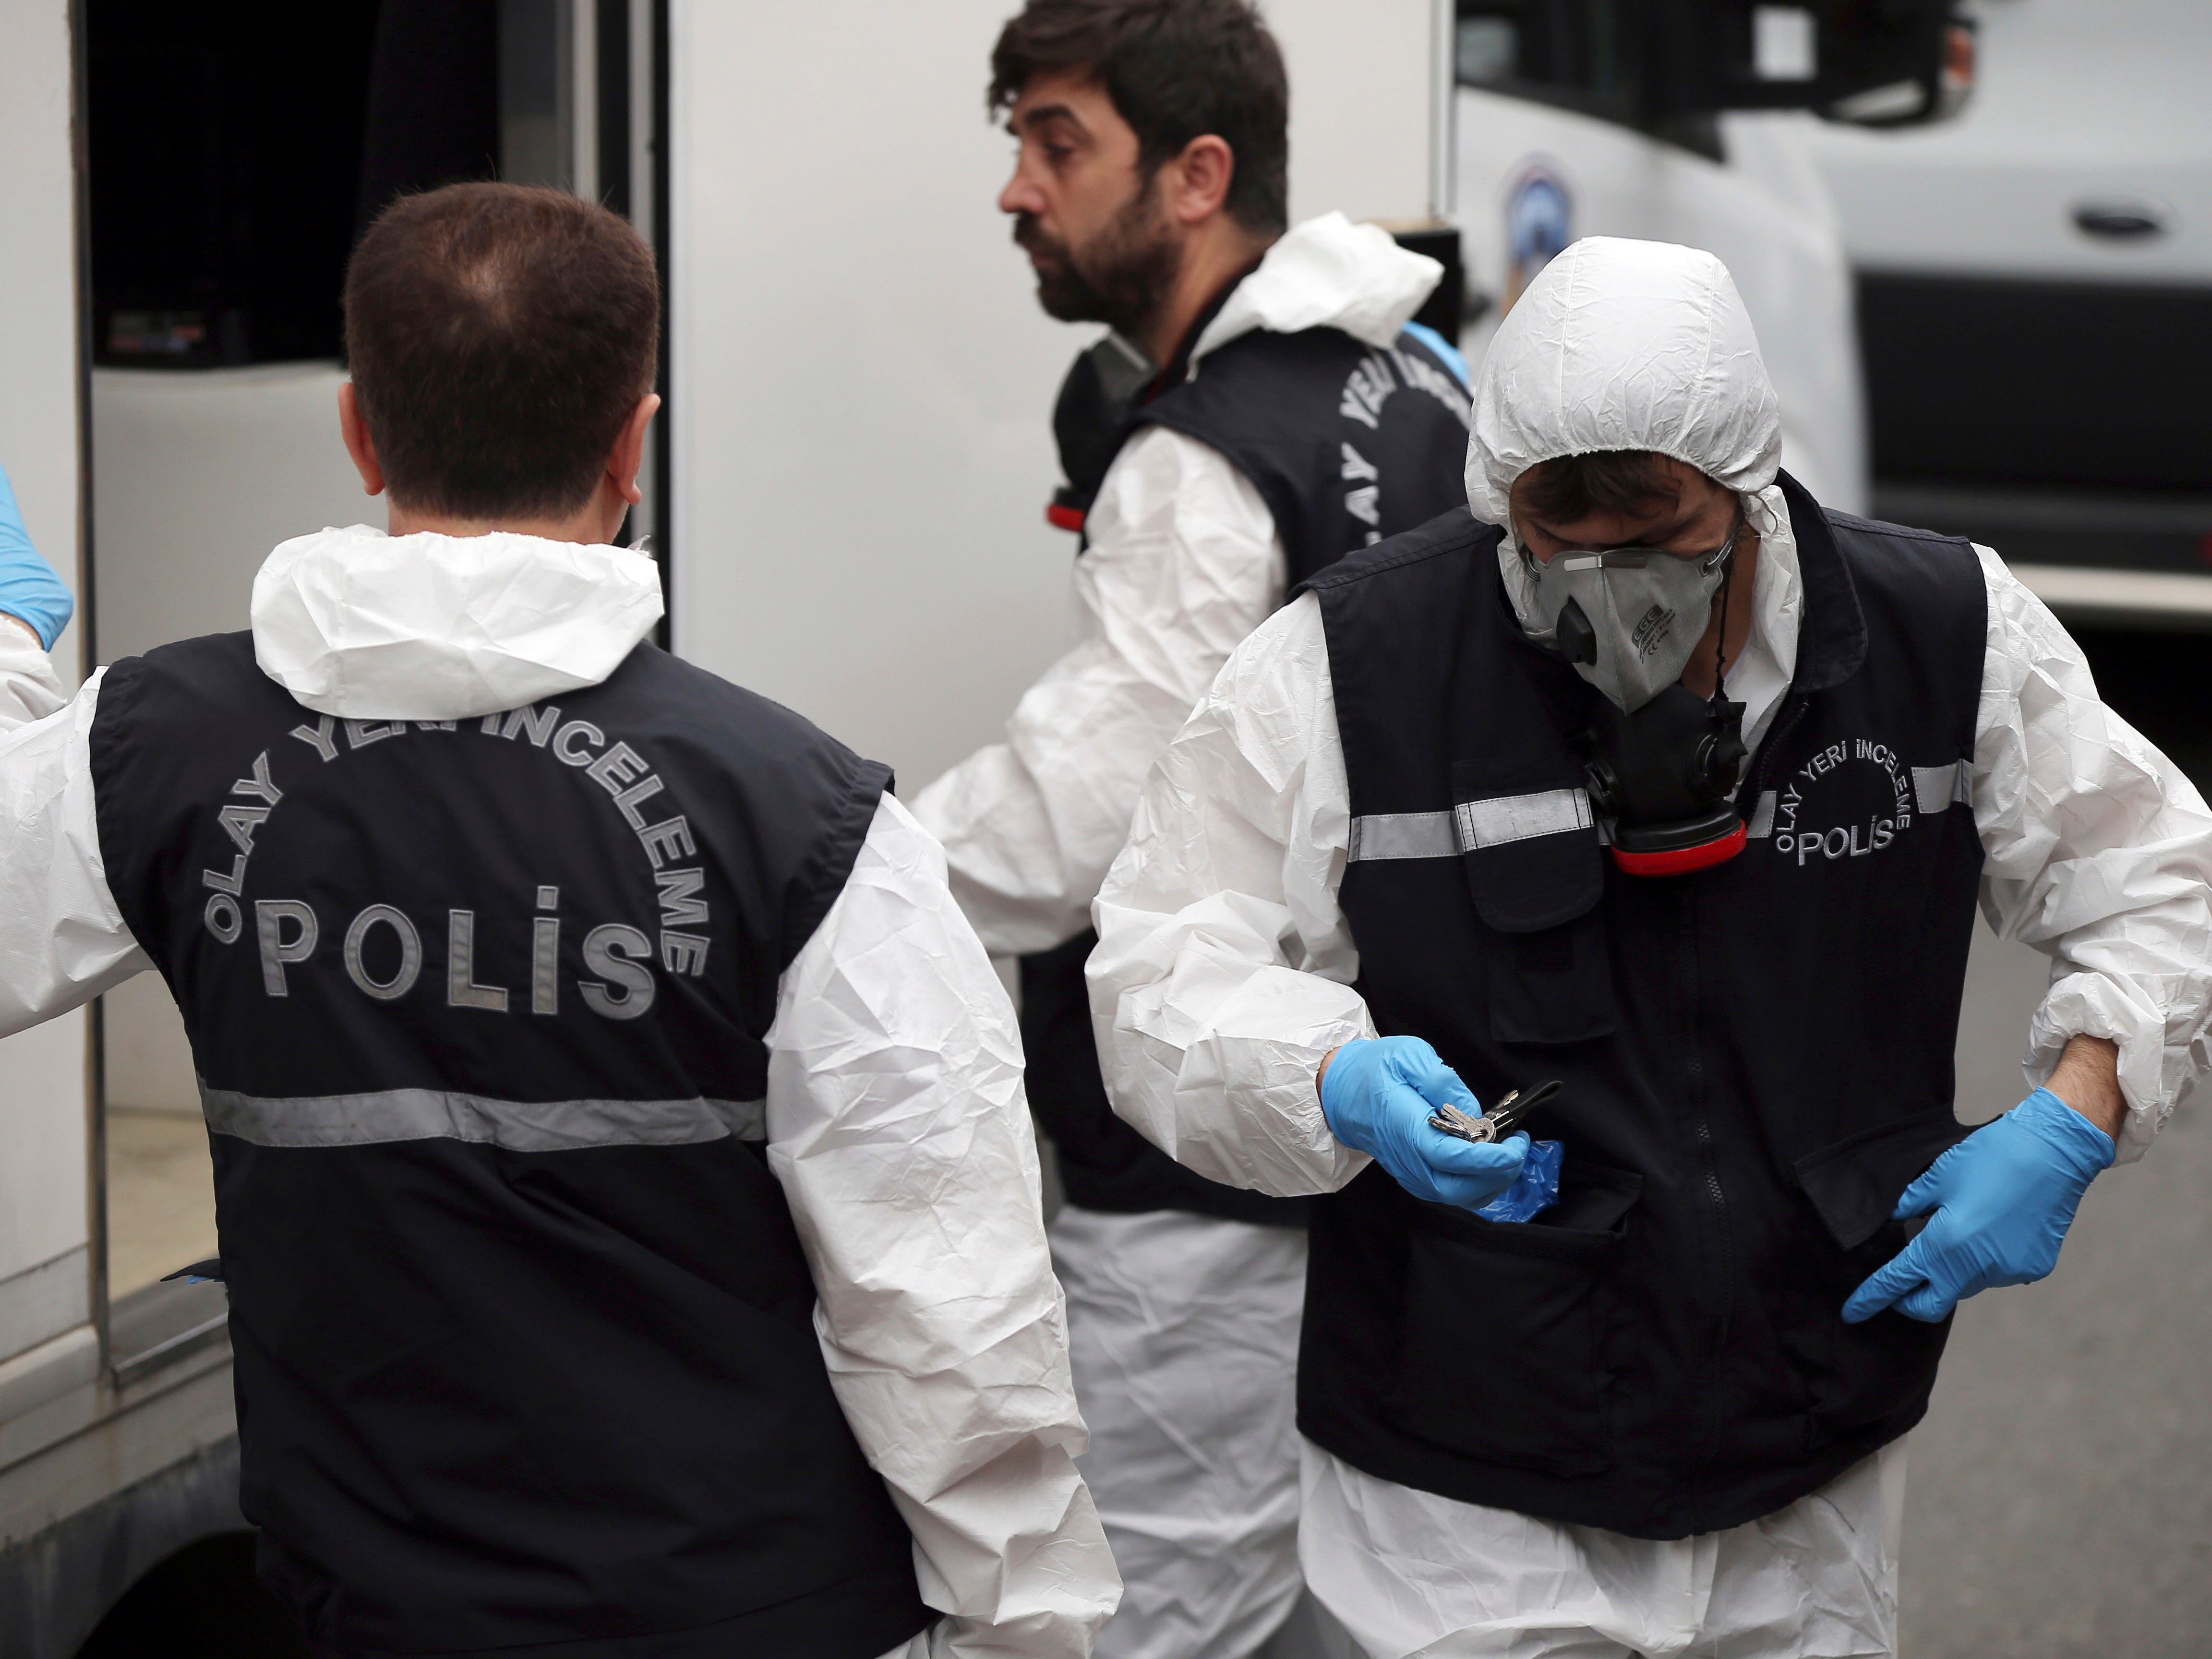 Turkish police officers prepare to enter the residence of the Saudi consul General Mohammed al-Otaibi to conduct a search after the disappearance and alleged slaying of writer Jamal Khashoggi, in Istanbul, Wednesday, Oct. 17, 2018.